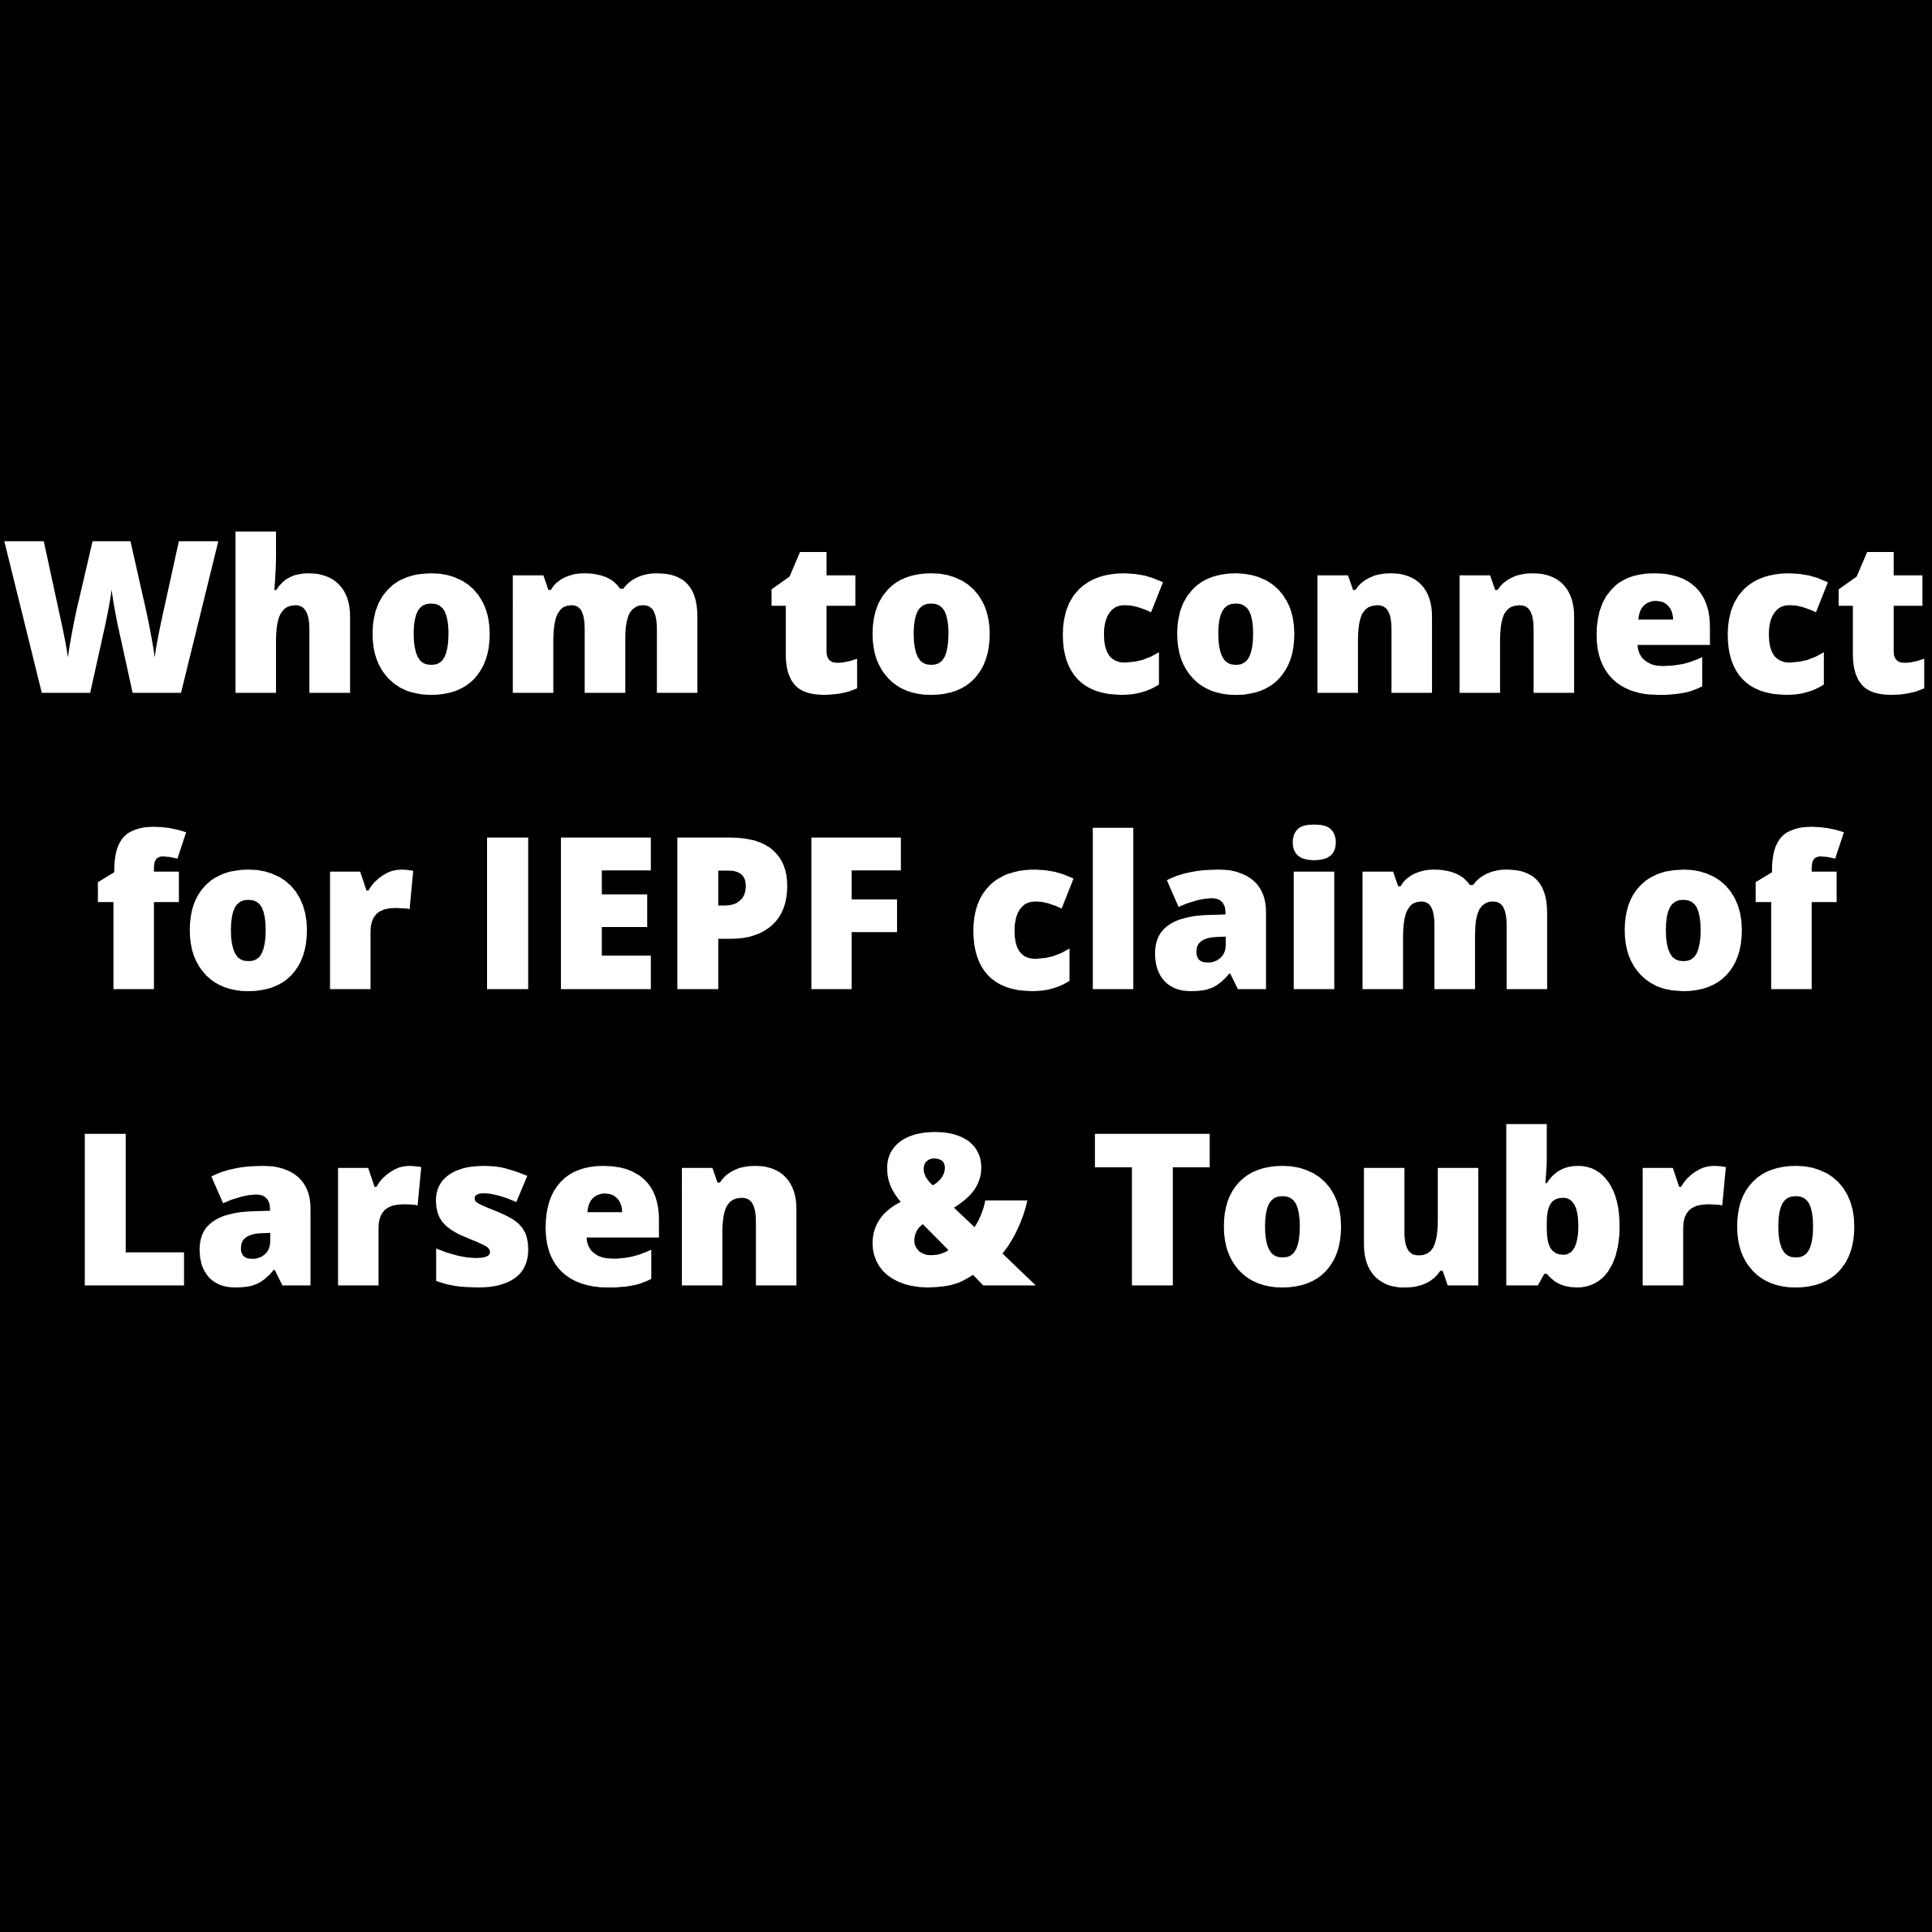 Whom to contact for  IEPF claim of LARSEN & TOUBRO (L&T) shares / unclaimed dividend of LARSEN & TOUBRO (L&T) shares?